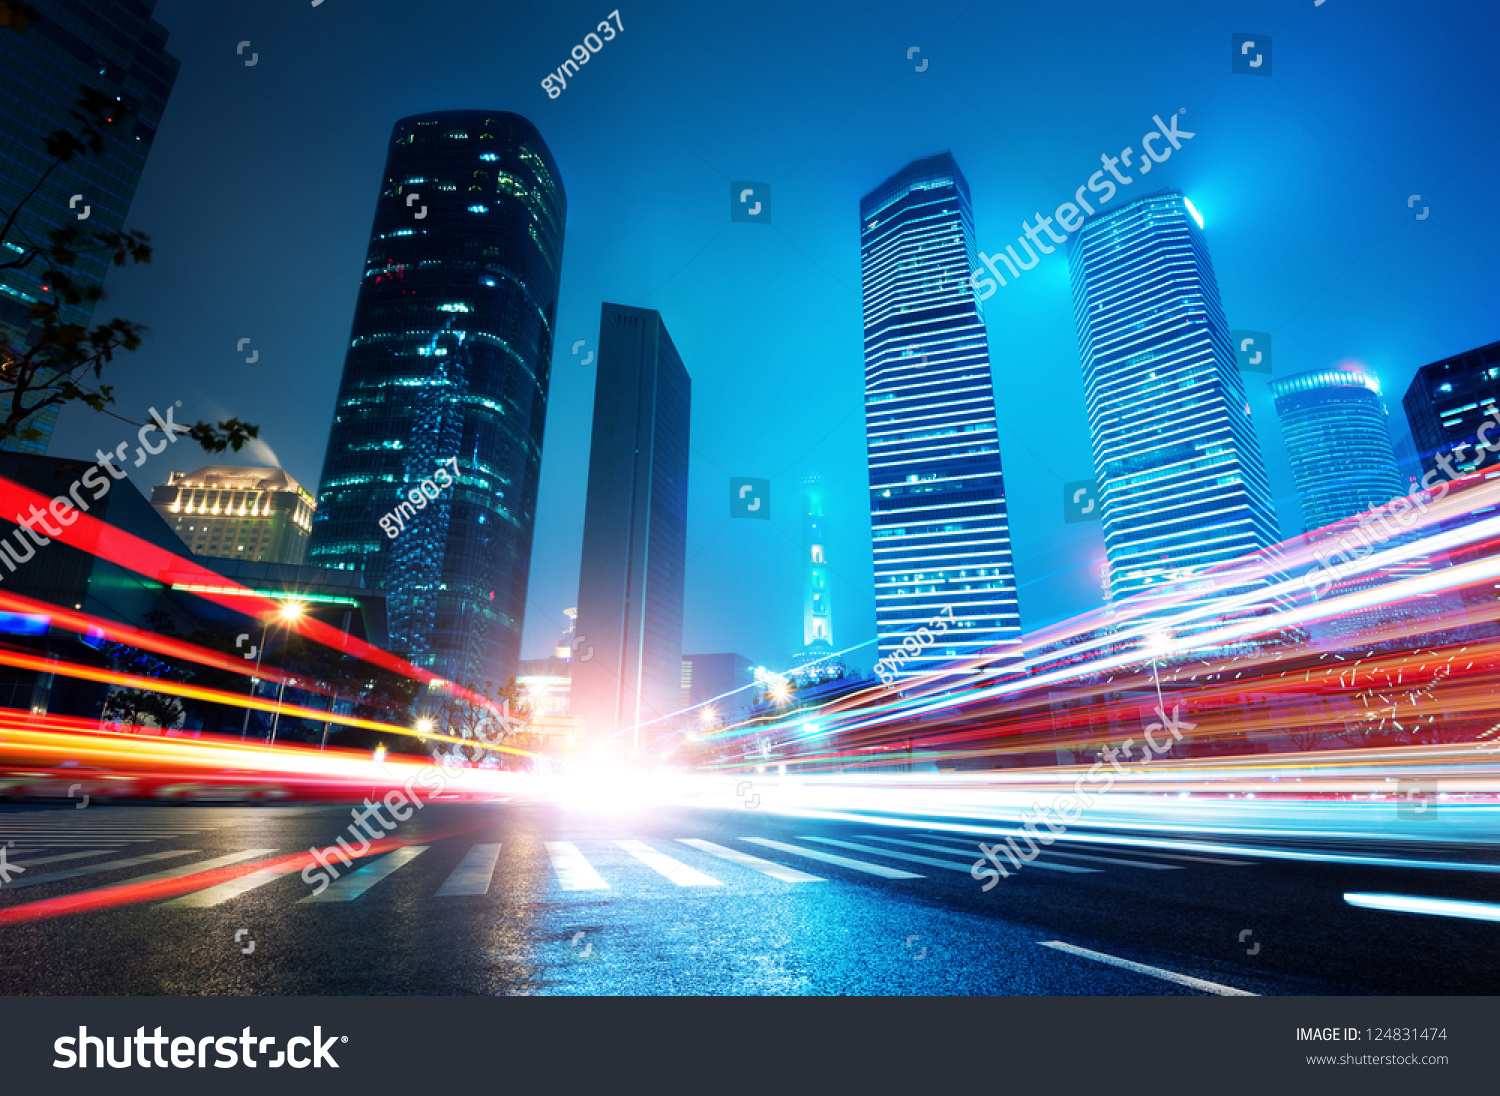 stock photo shanghai lujiazui finance and trade zone of the modern city night background 124831474 - asdasd